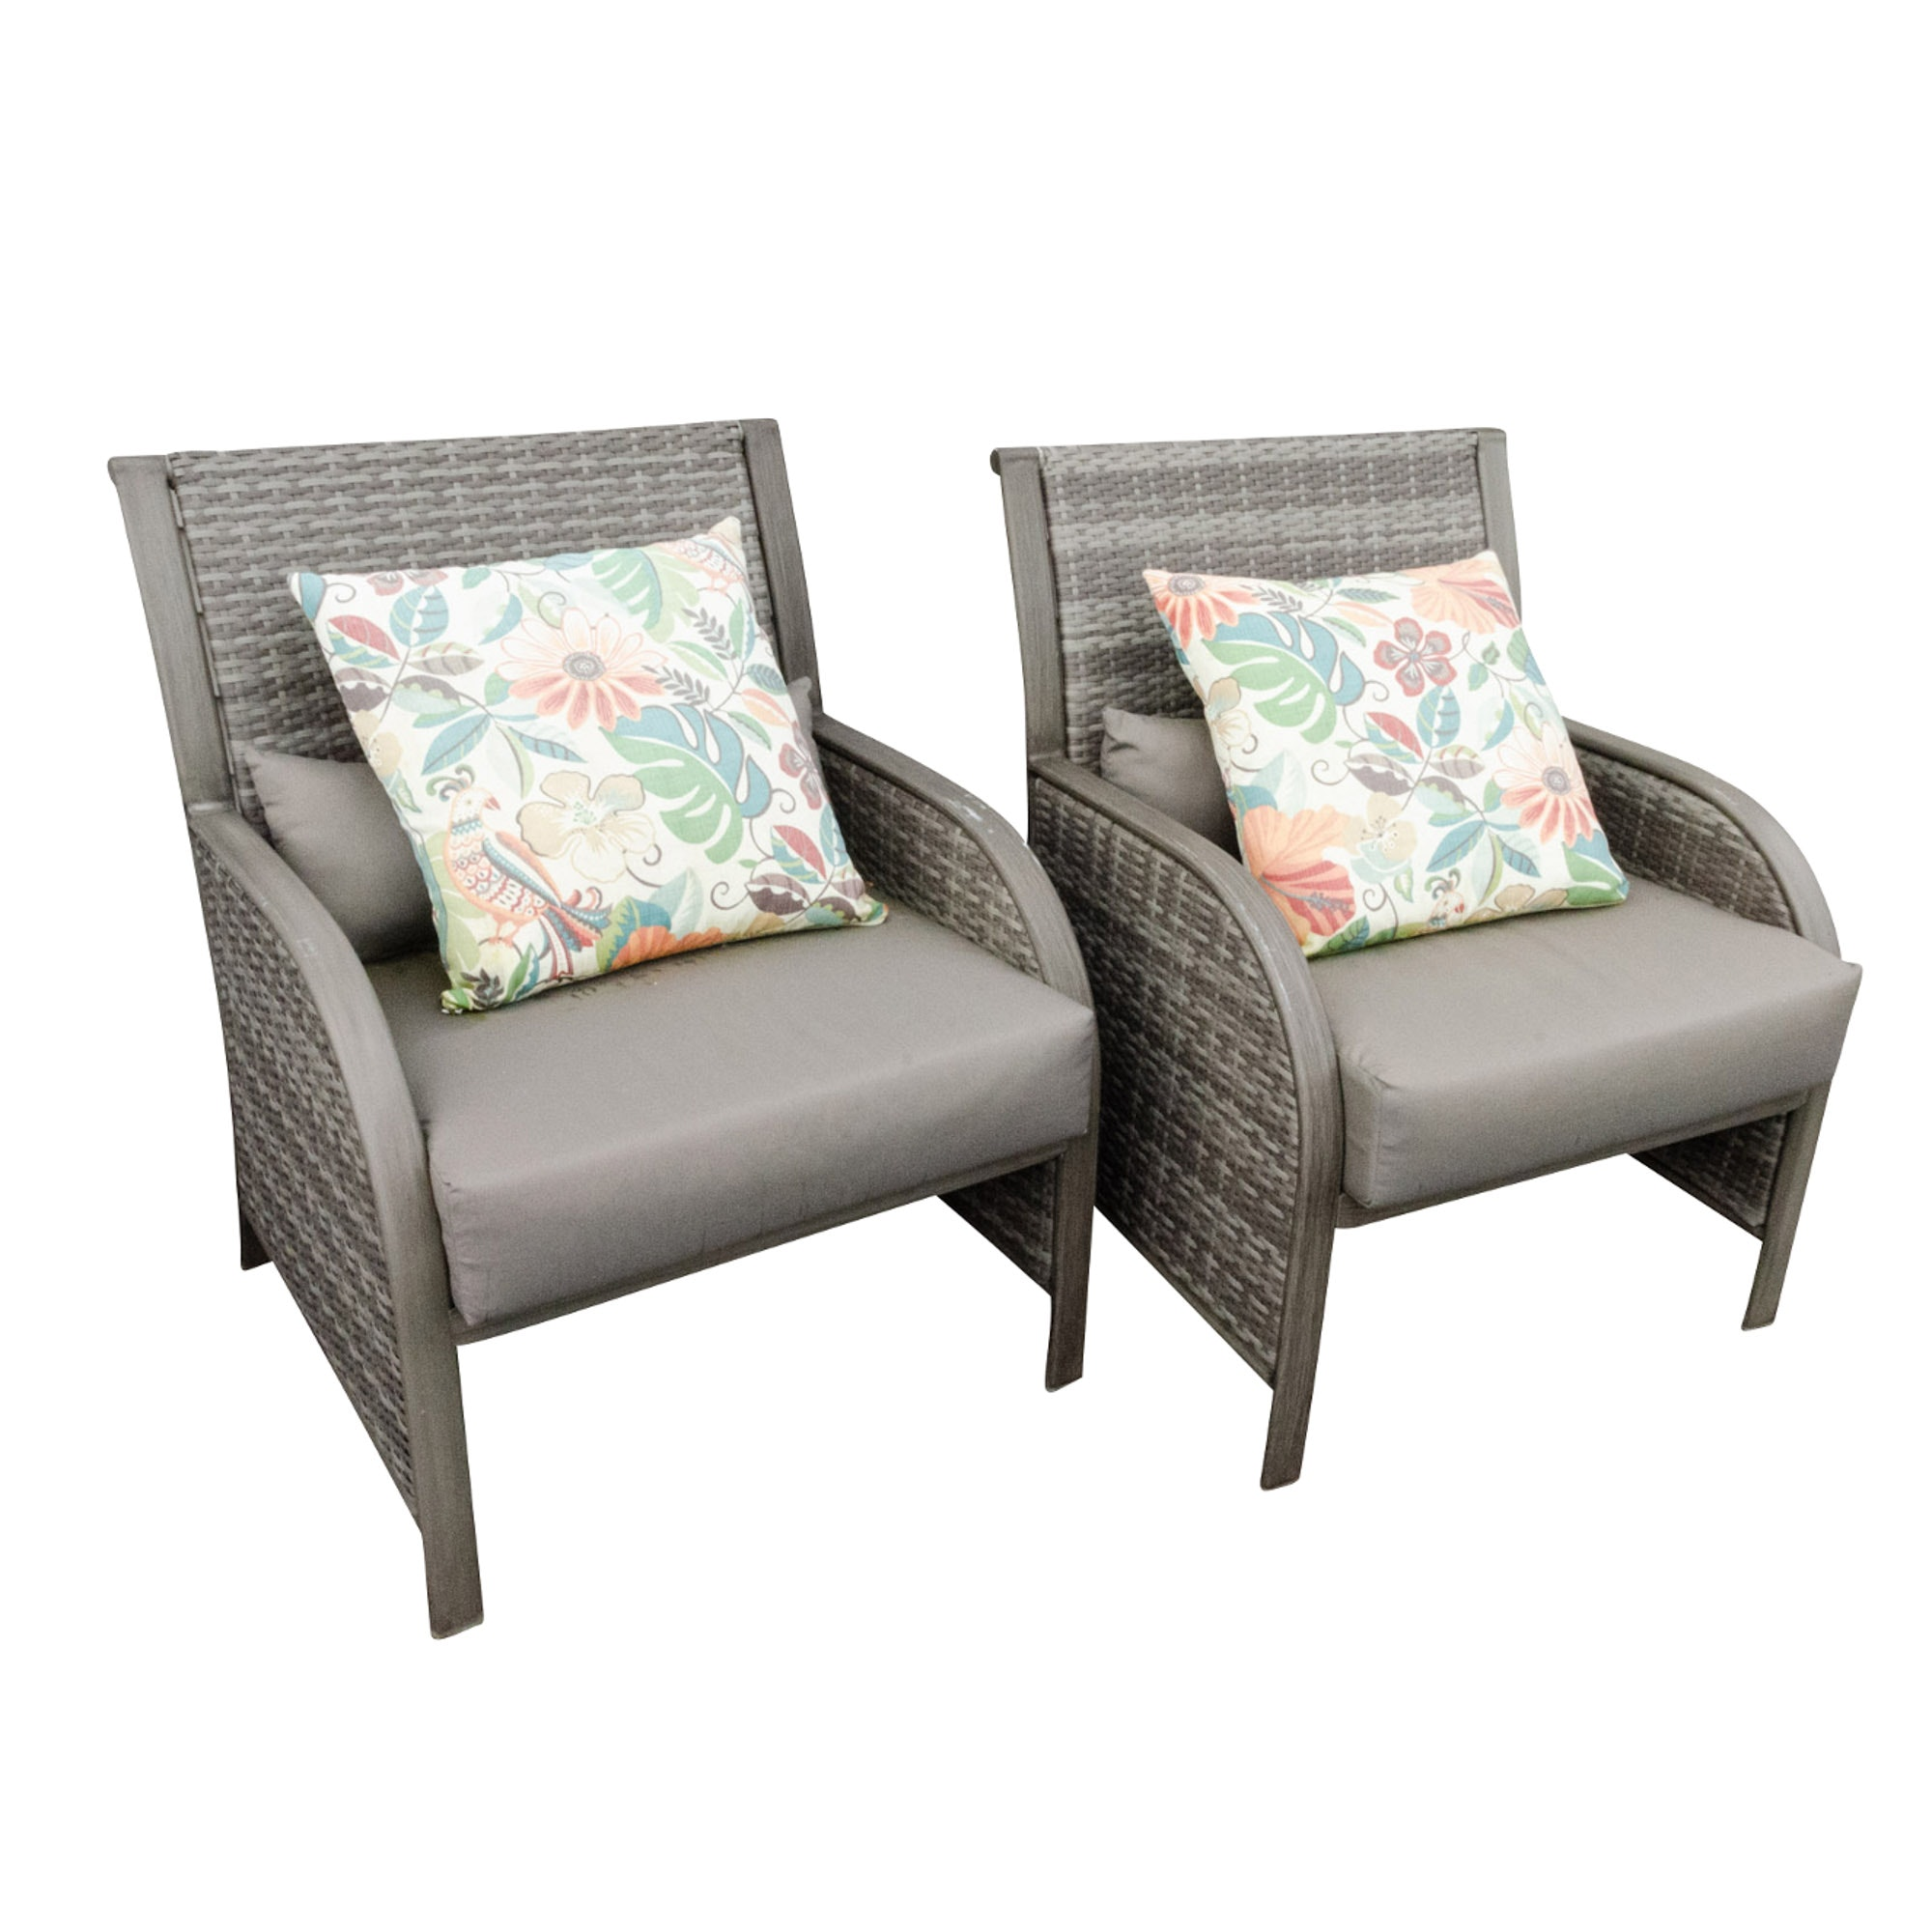 Grey Resin Outdoor Armchairs with Sunbrella Cushions